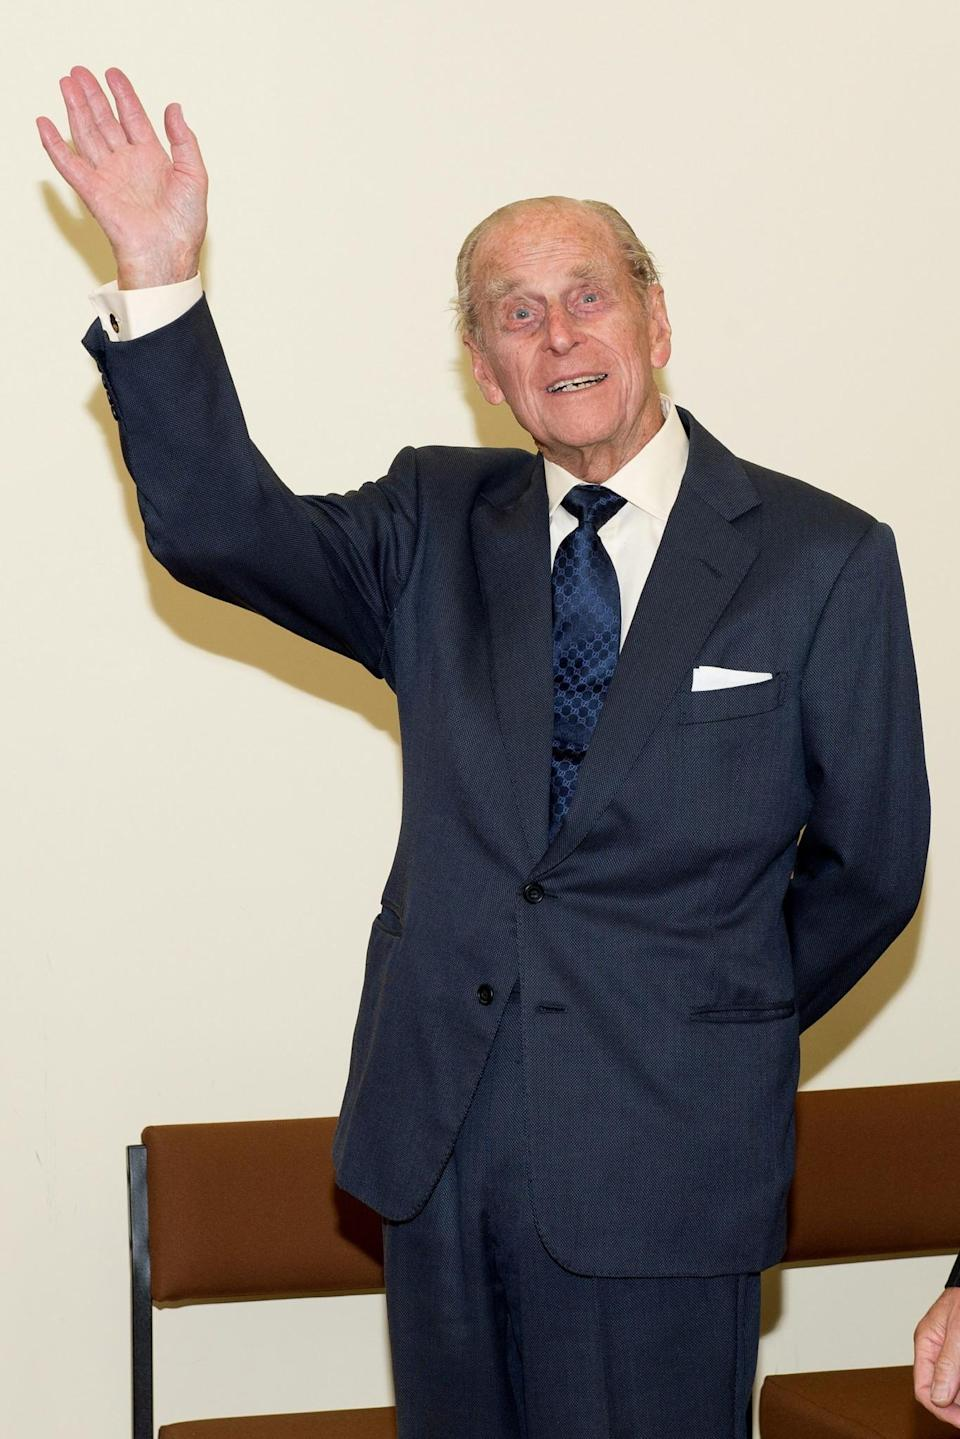 <p>The Duke of Edinburgh, waves during his official visit to the St Michael's Care Complex in Aylsham, Norfolk, which provides care for the elderly. </p>